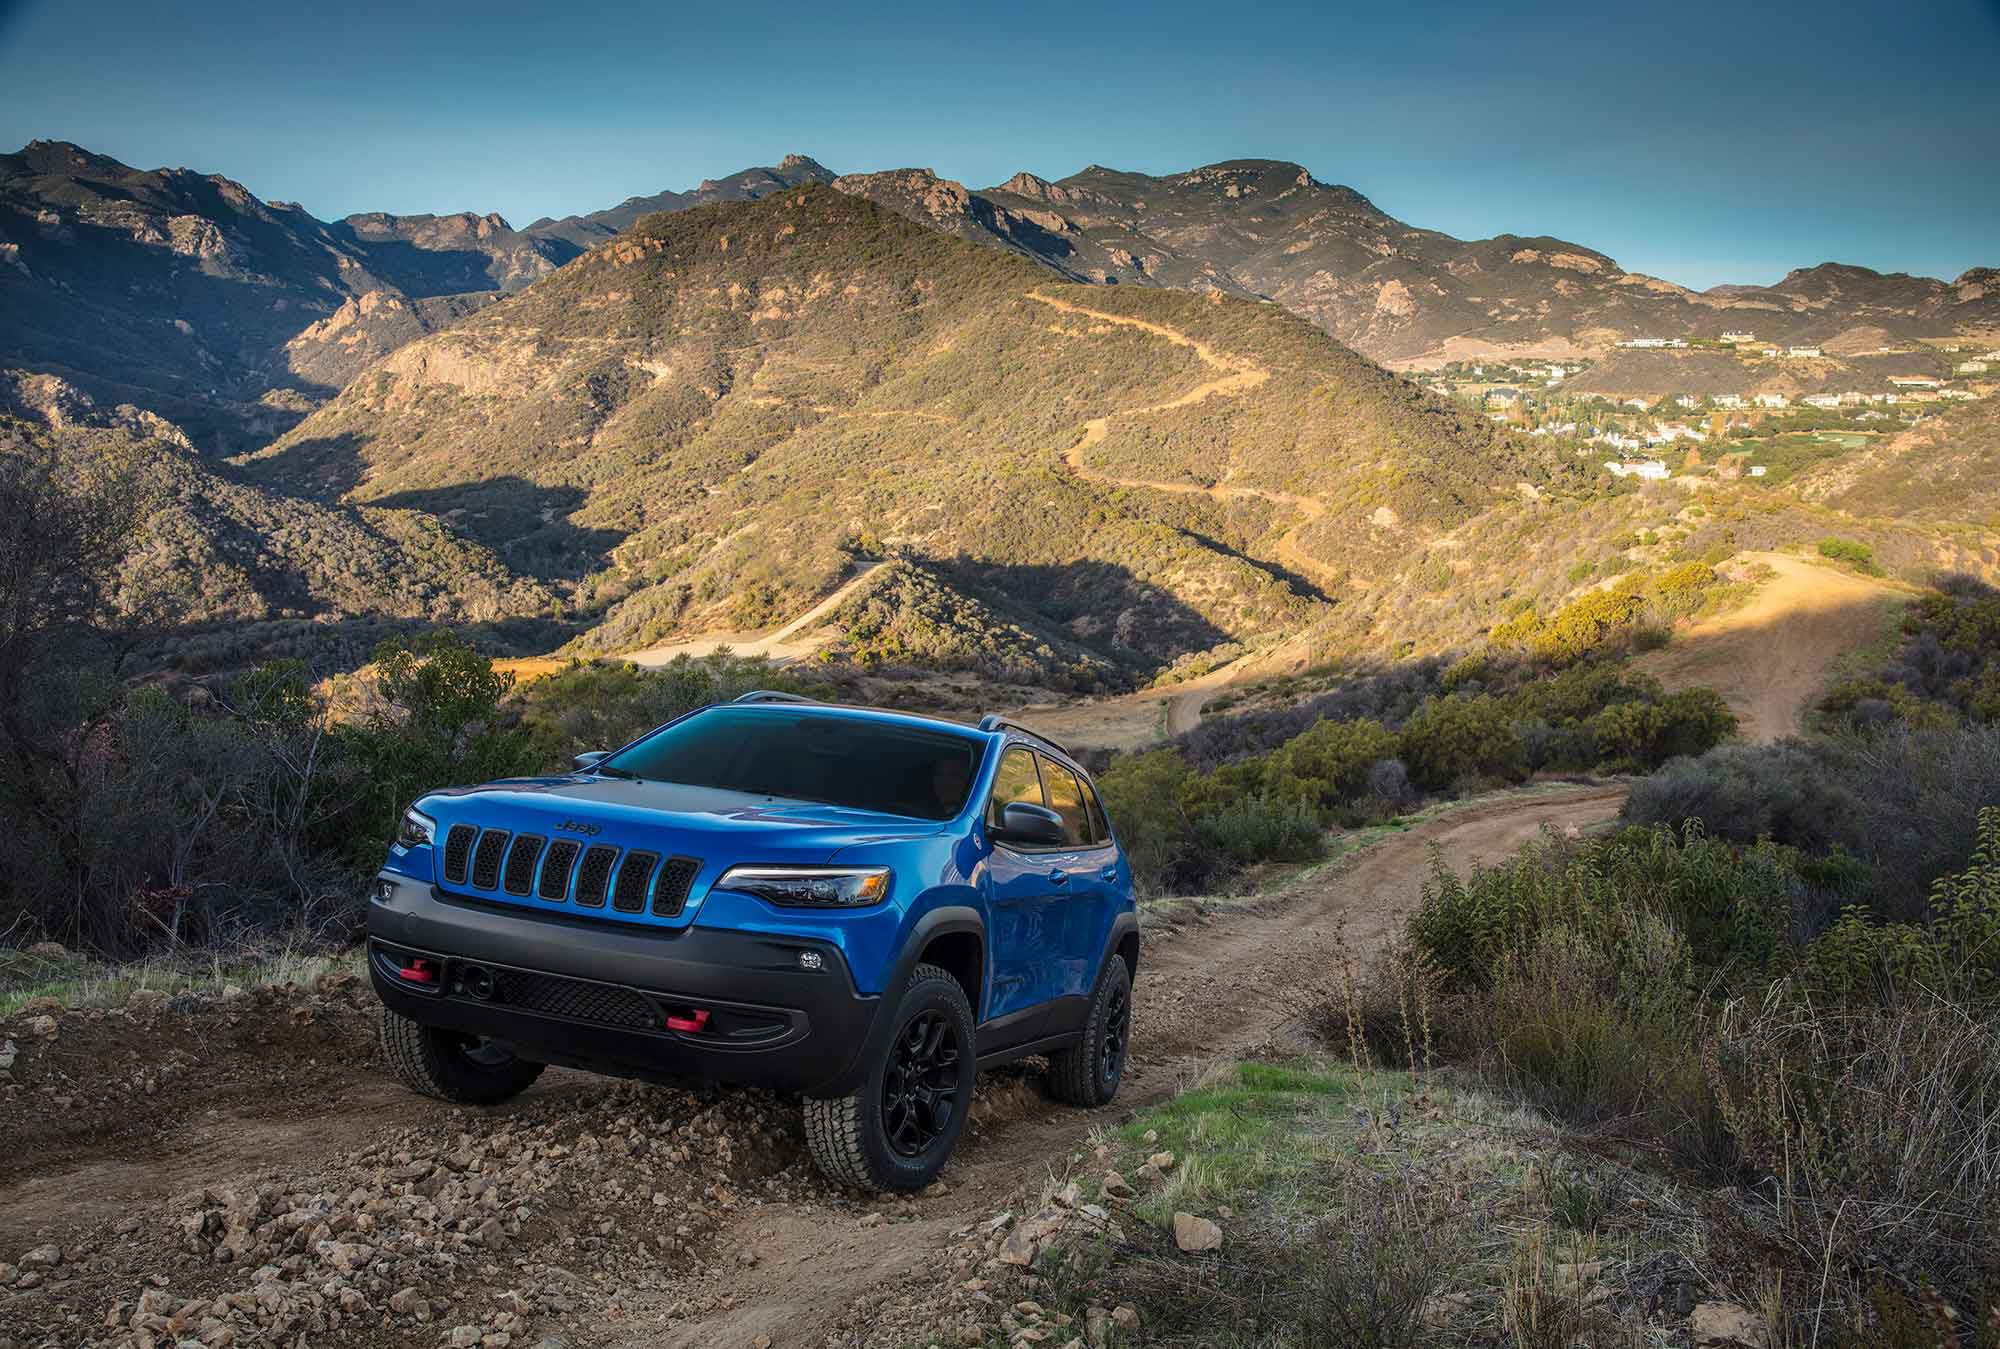 The 2021 Jeep Cherokee can tow up to 4,500 pounds.